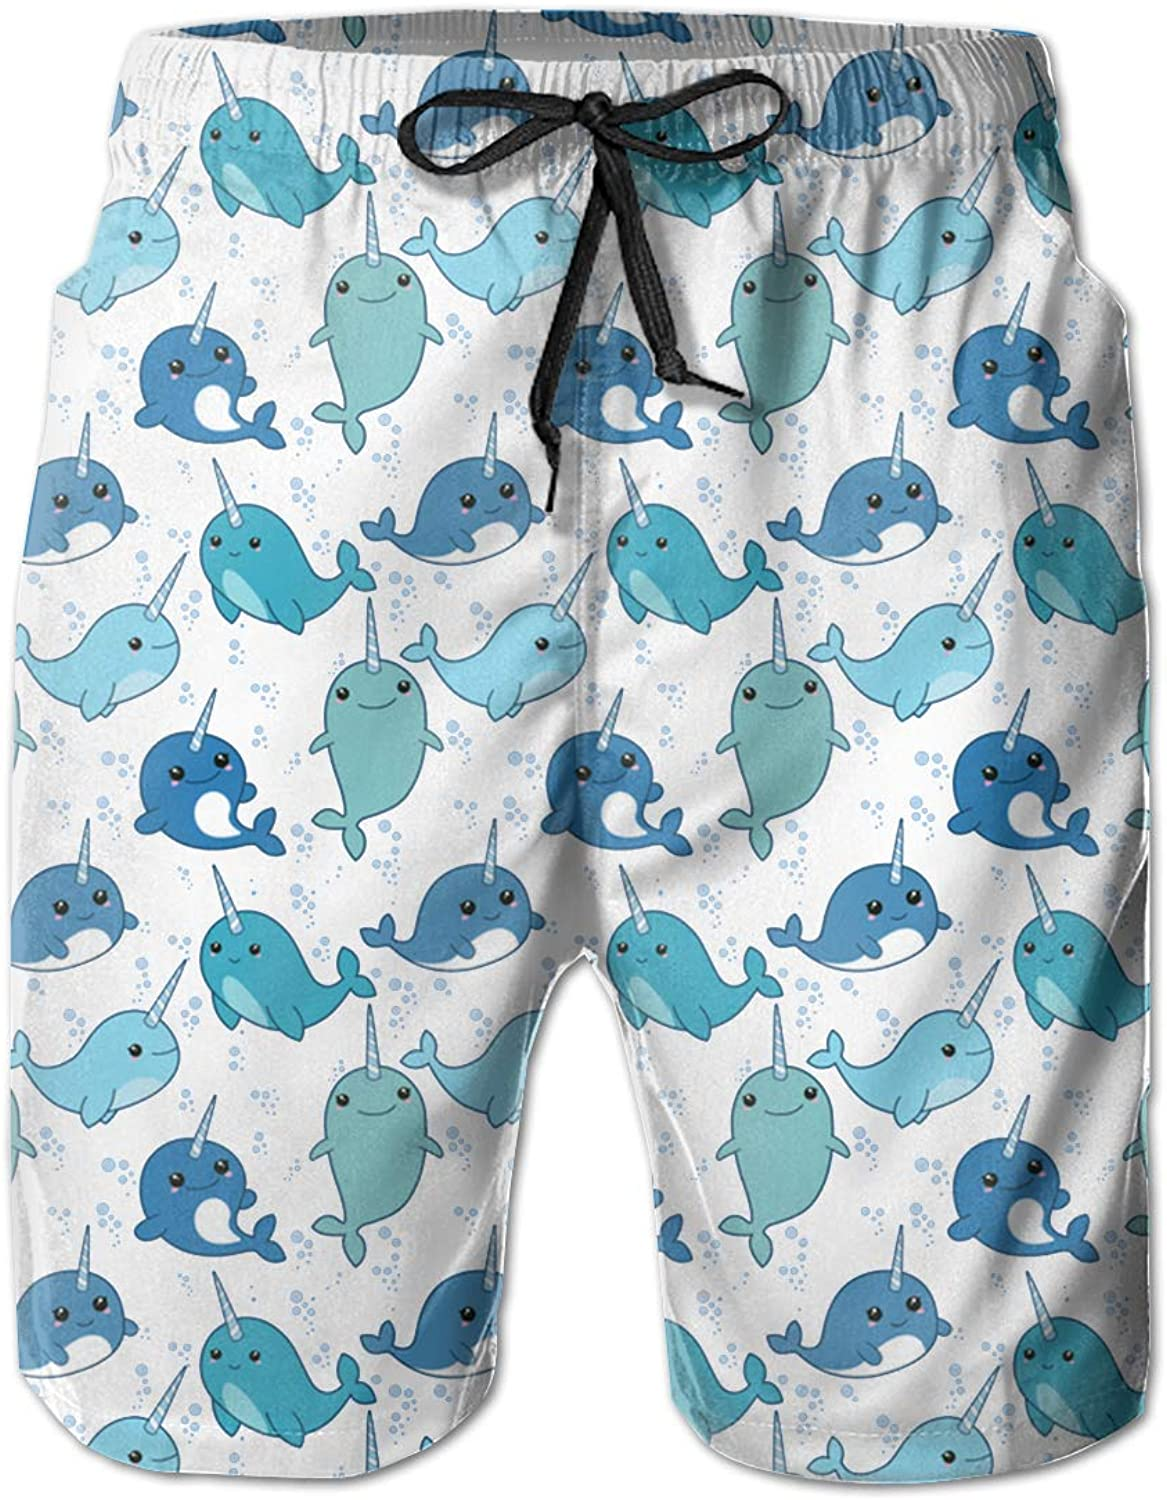 843bde4af4 Linxher Cute Narwhal Narwhal Narwhal Pattern Men's Swim Trunks Quick Dry  Swimming Volley Beach Board Shorts a3670e